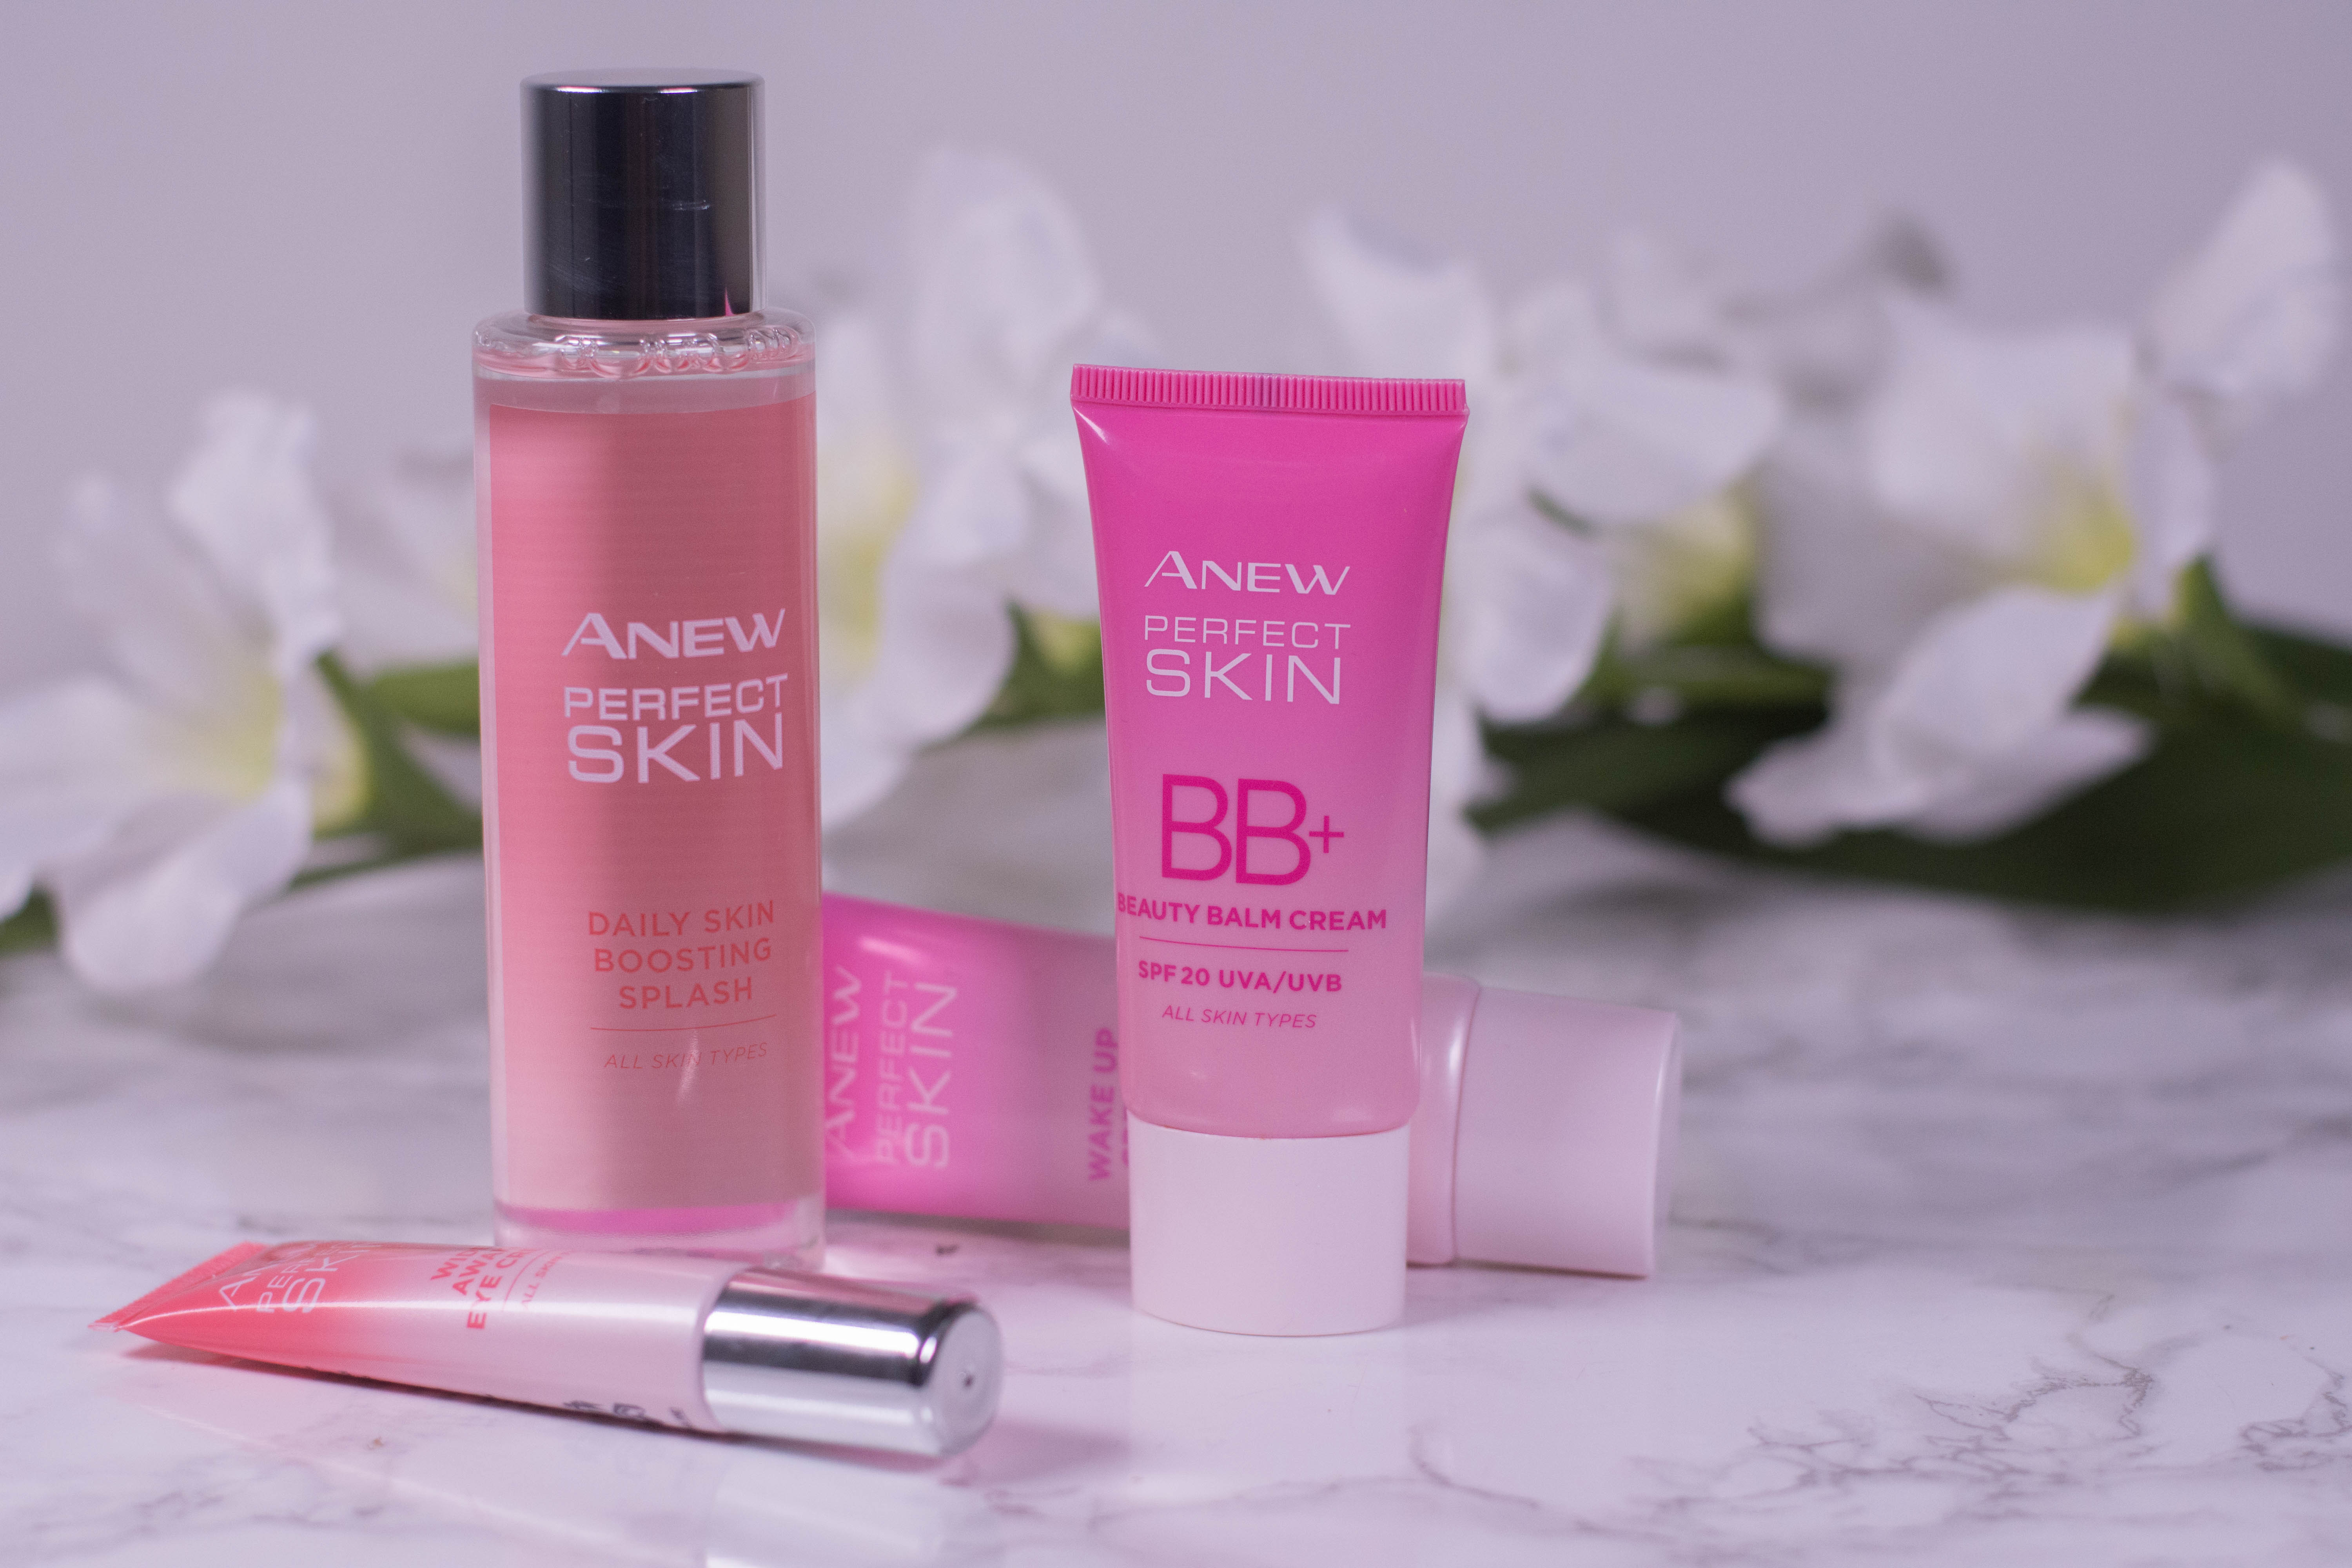 Avon Anew Perfect Skin